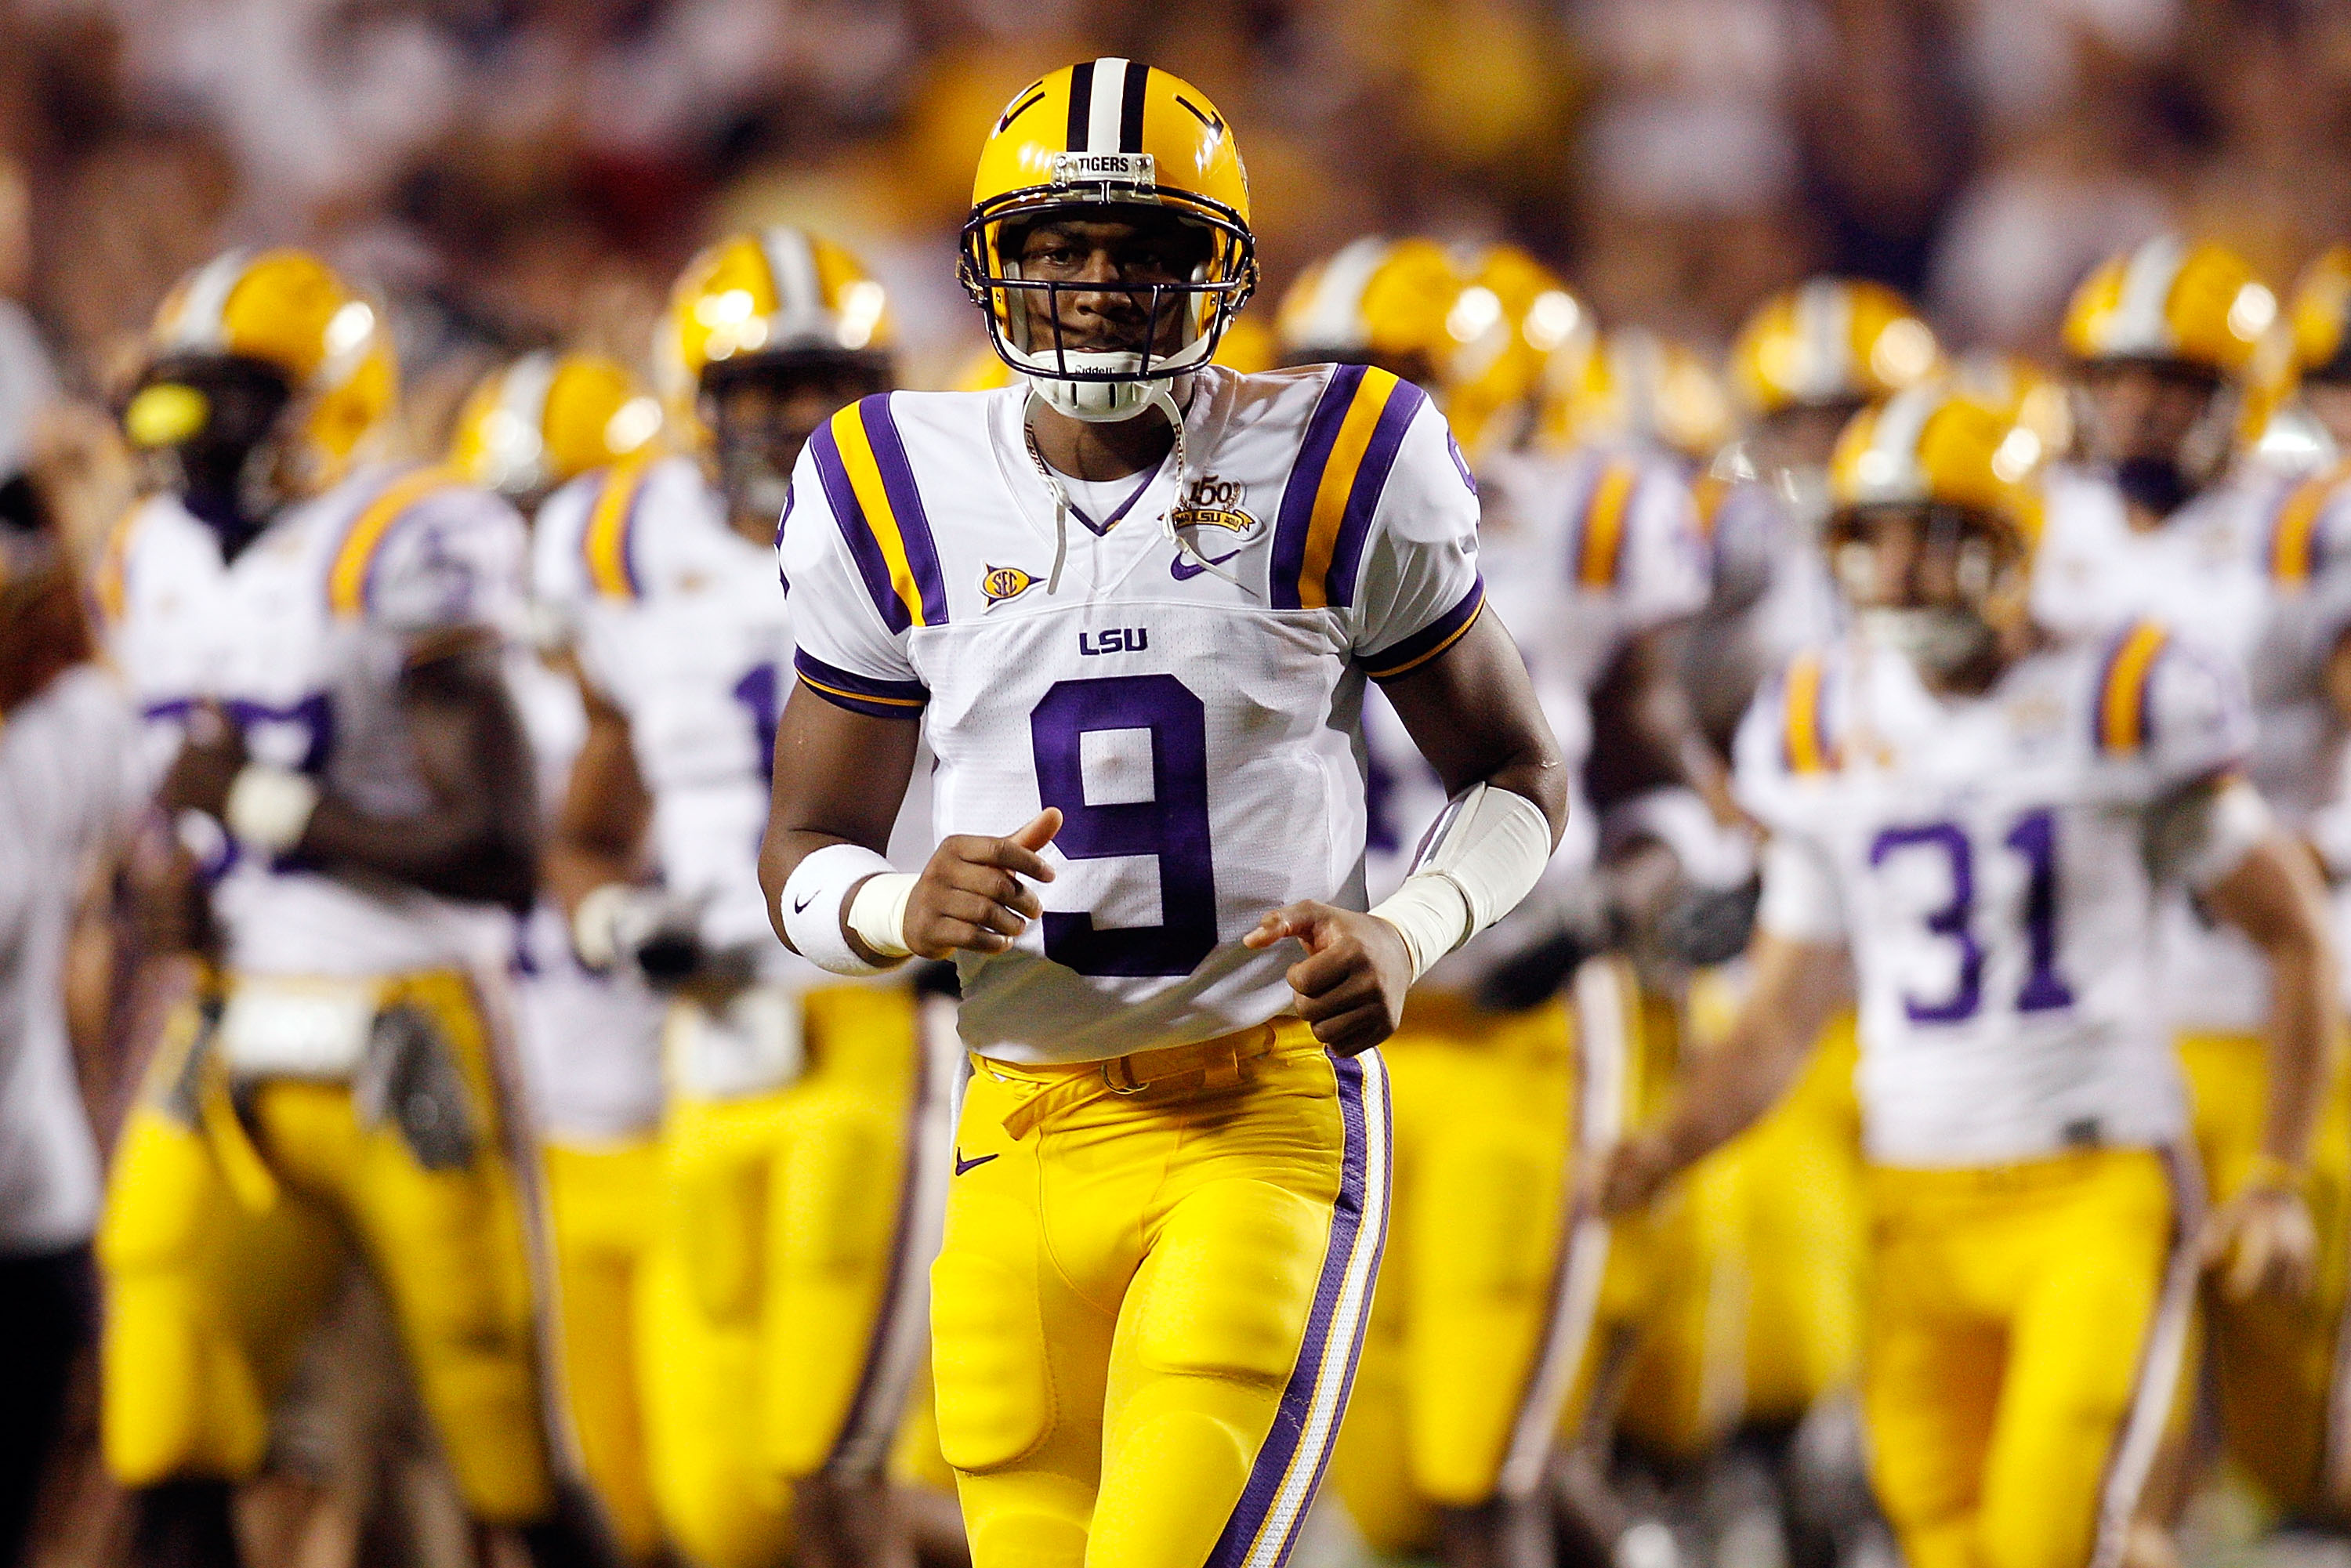 BATON ROUGE, LA - SEPTEMBER 25:  Jordan Jefferson #9 of the Louisiana State Univeristy Tigers runs on the field before playing the West Virginia Mountaineers at Tiger Stadium on September 25, 2010 in Baton Rouge, Louisiana.  (Photo by Chris Graythen/Getty